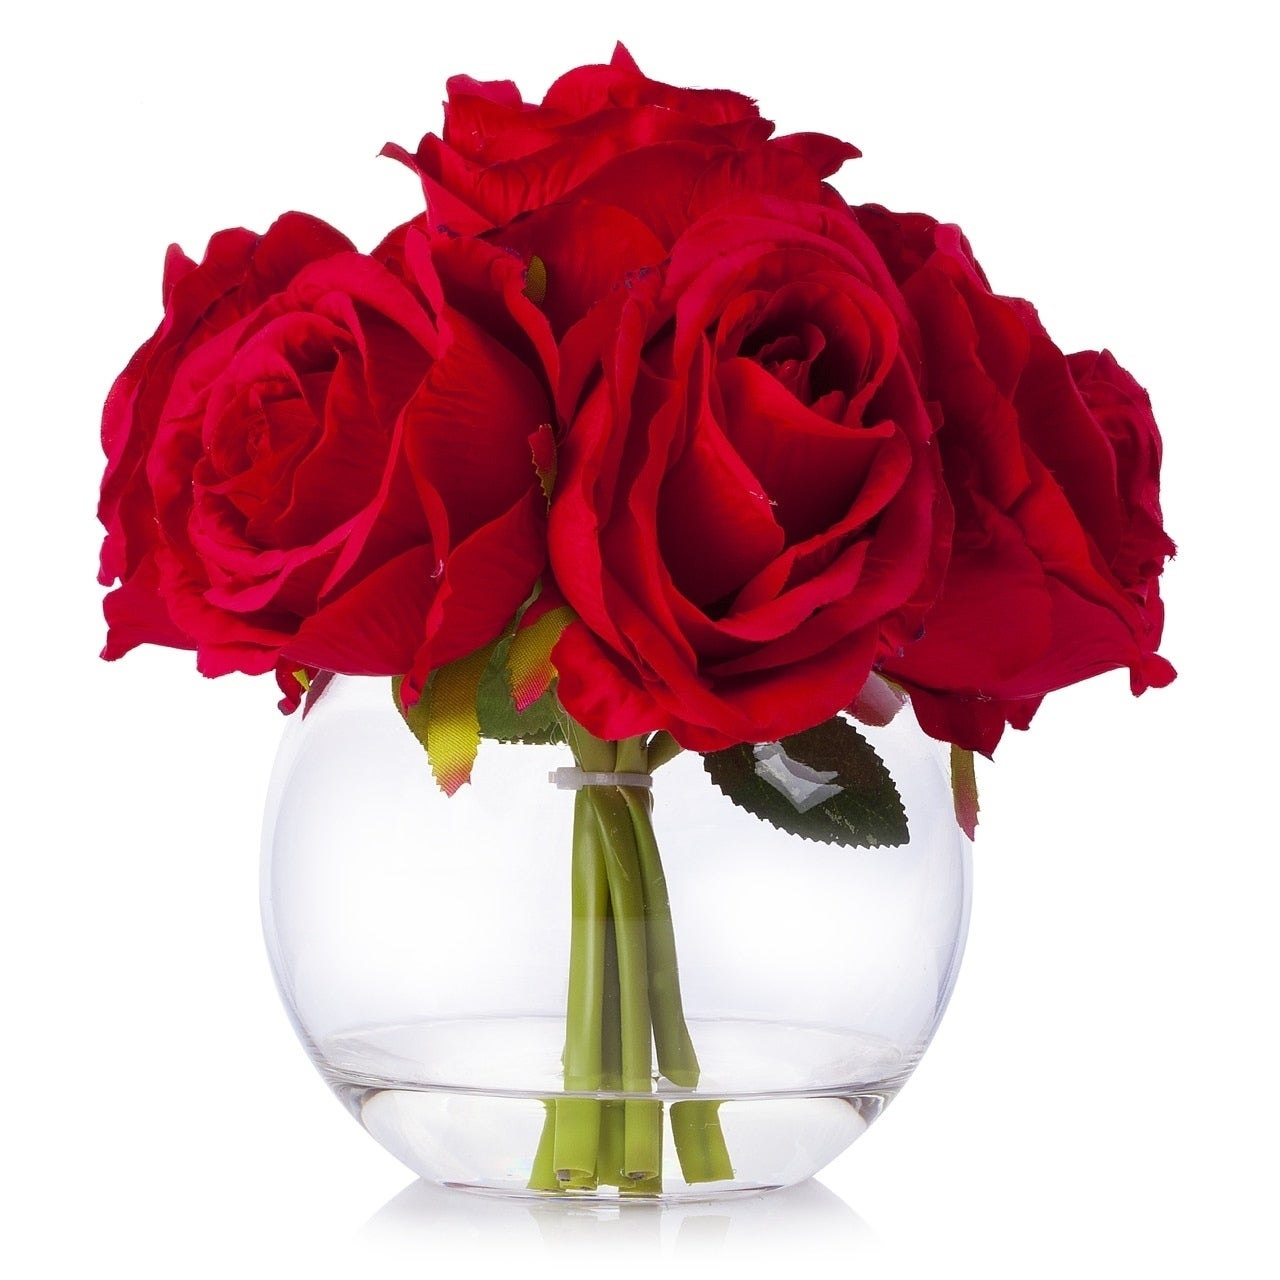 Enova Home 7 Heads Large Rose Flower Arrangement In Clear Glass Vase With Faux Water For Home Wedding Decoration Overstock 29822797 Red